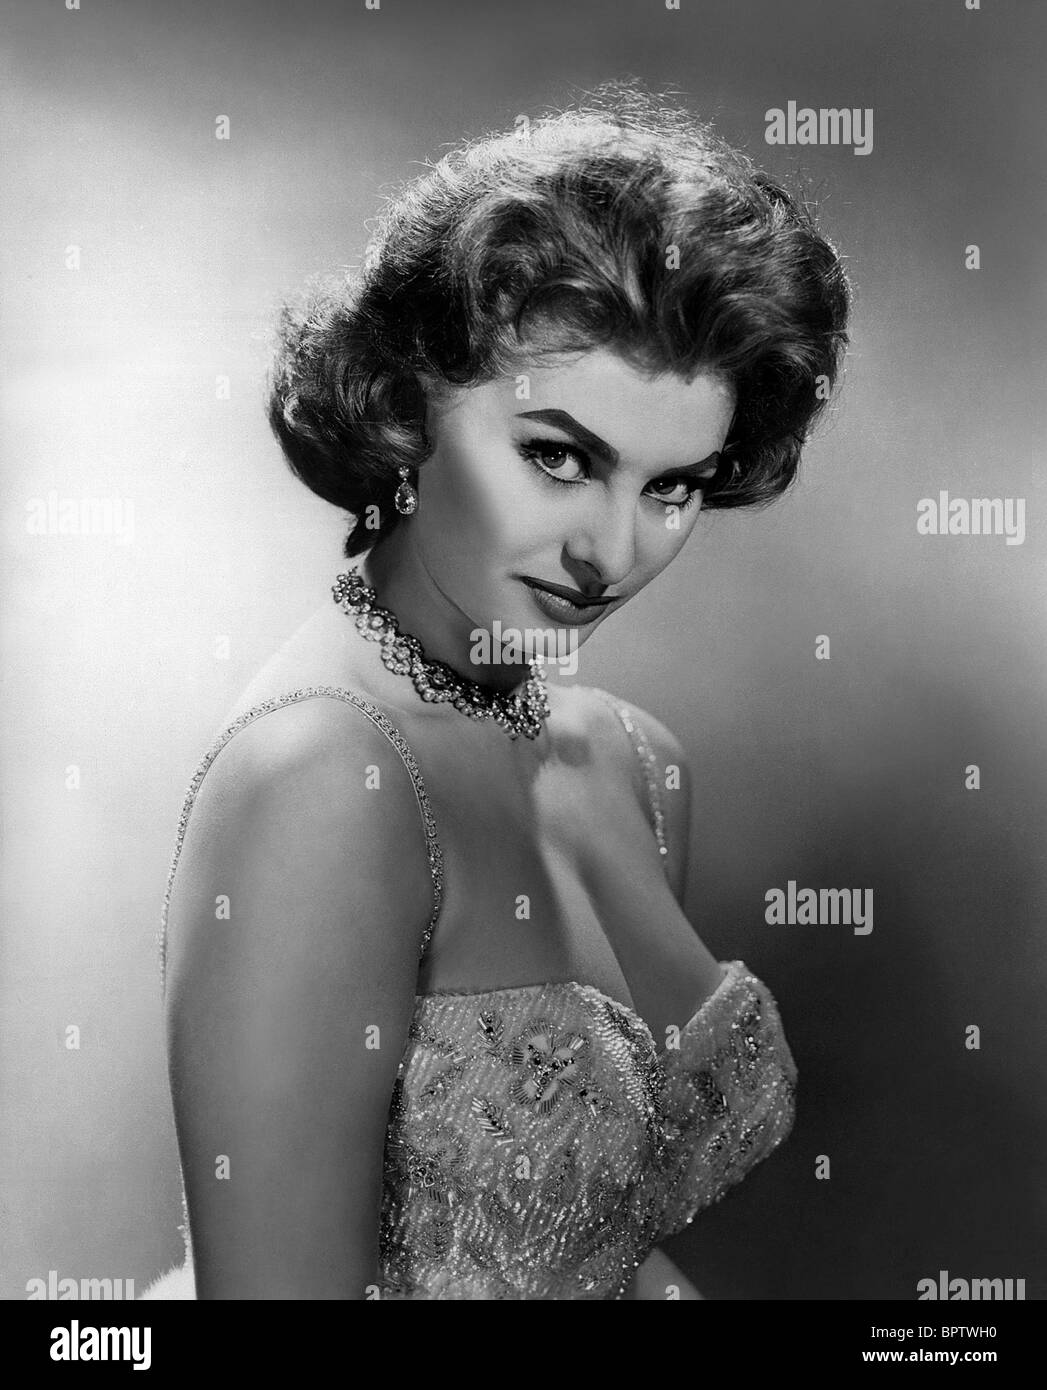 SOPHIA LOREN ACTRESS (1956) - Stock Image